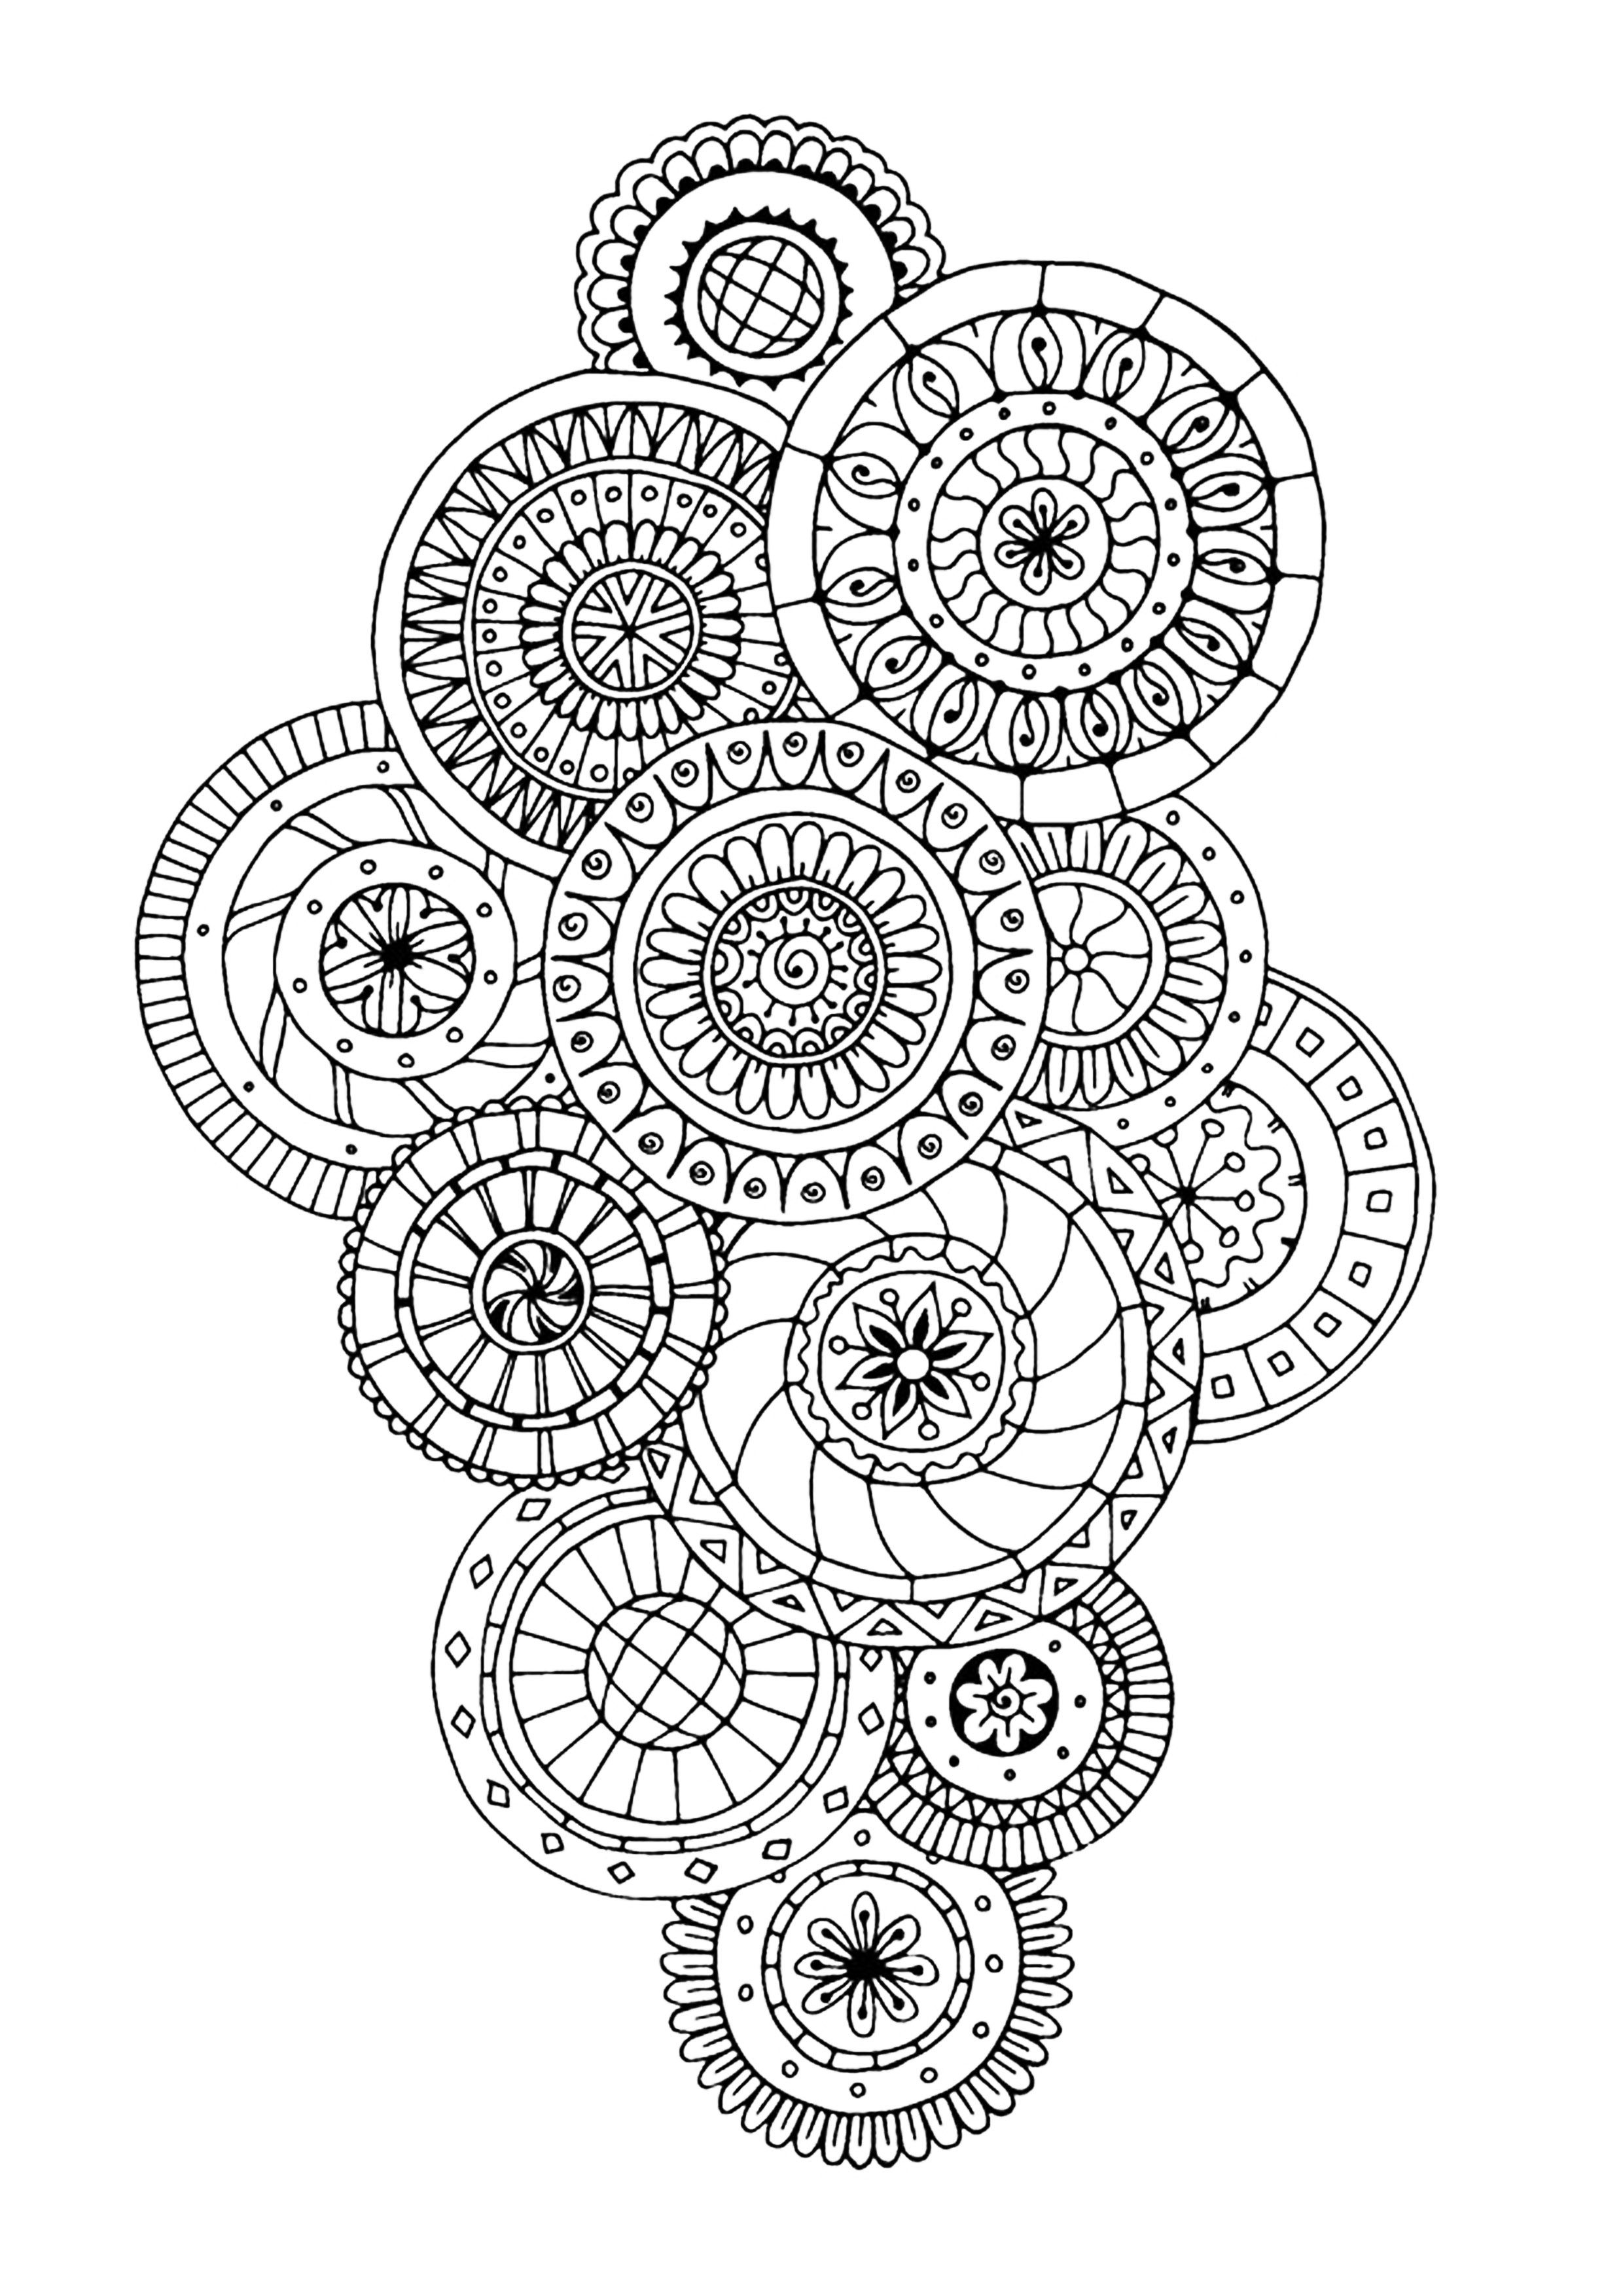 Coloriage Anti Stress Grand Format.Zen Anti Stress Coloring Page Abstract Pattern Inspired By